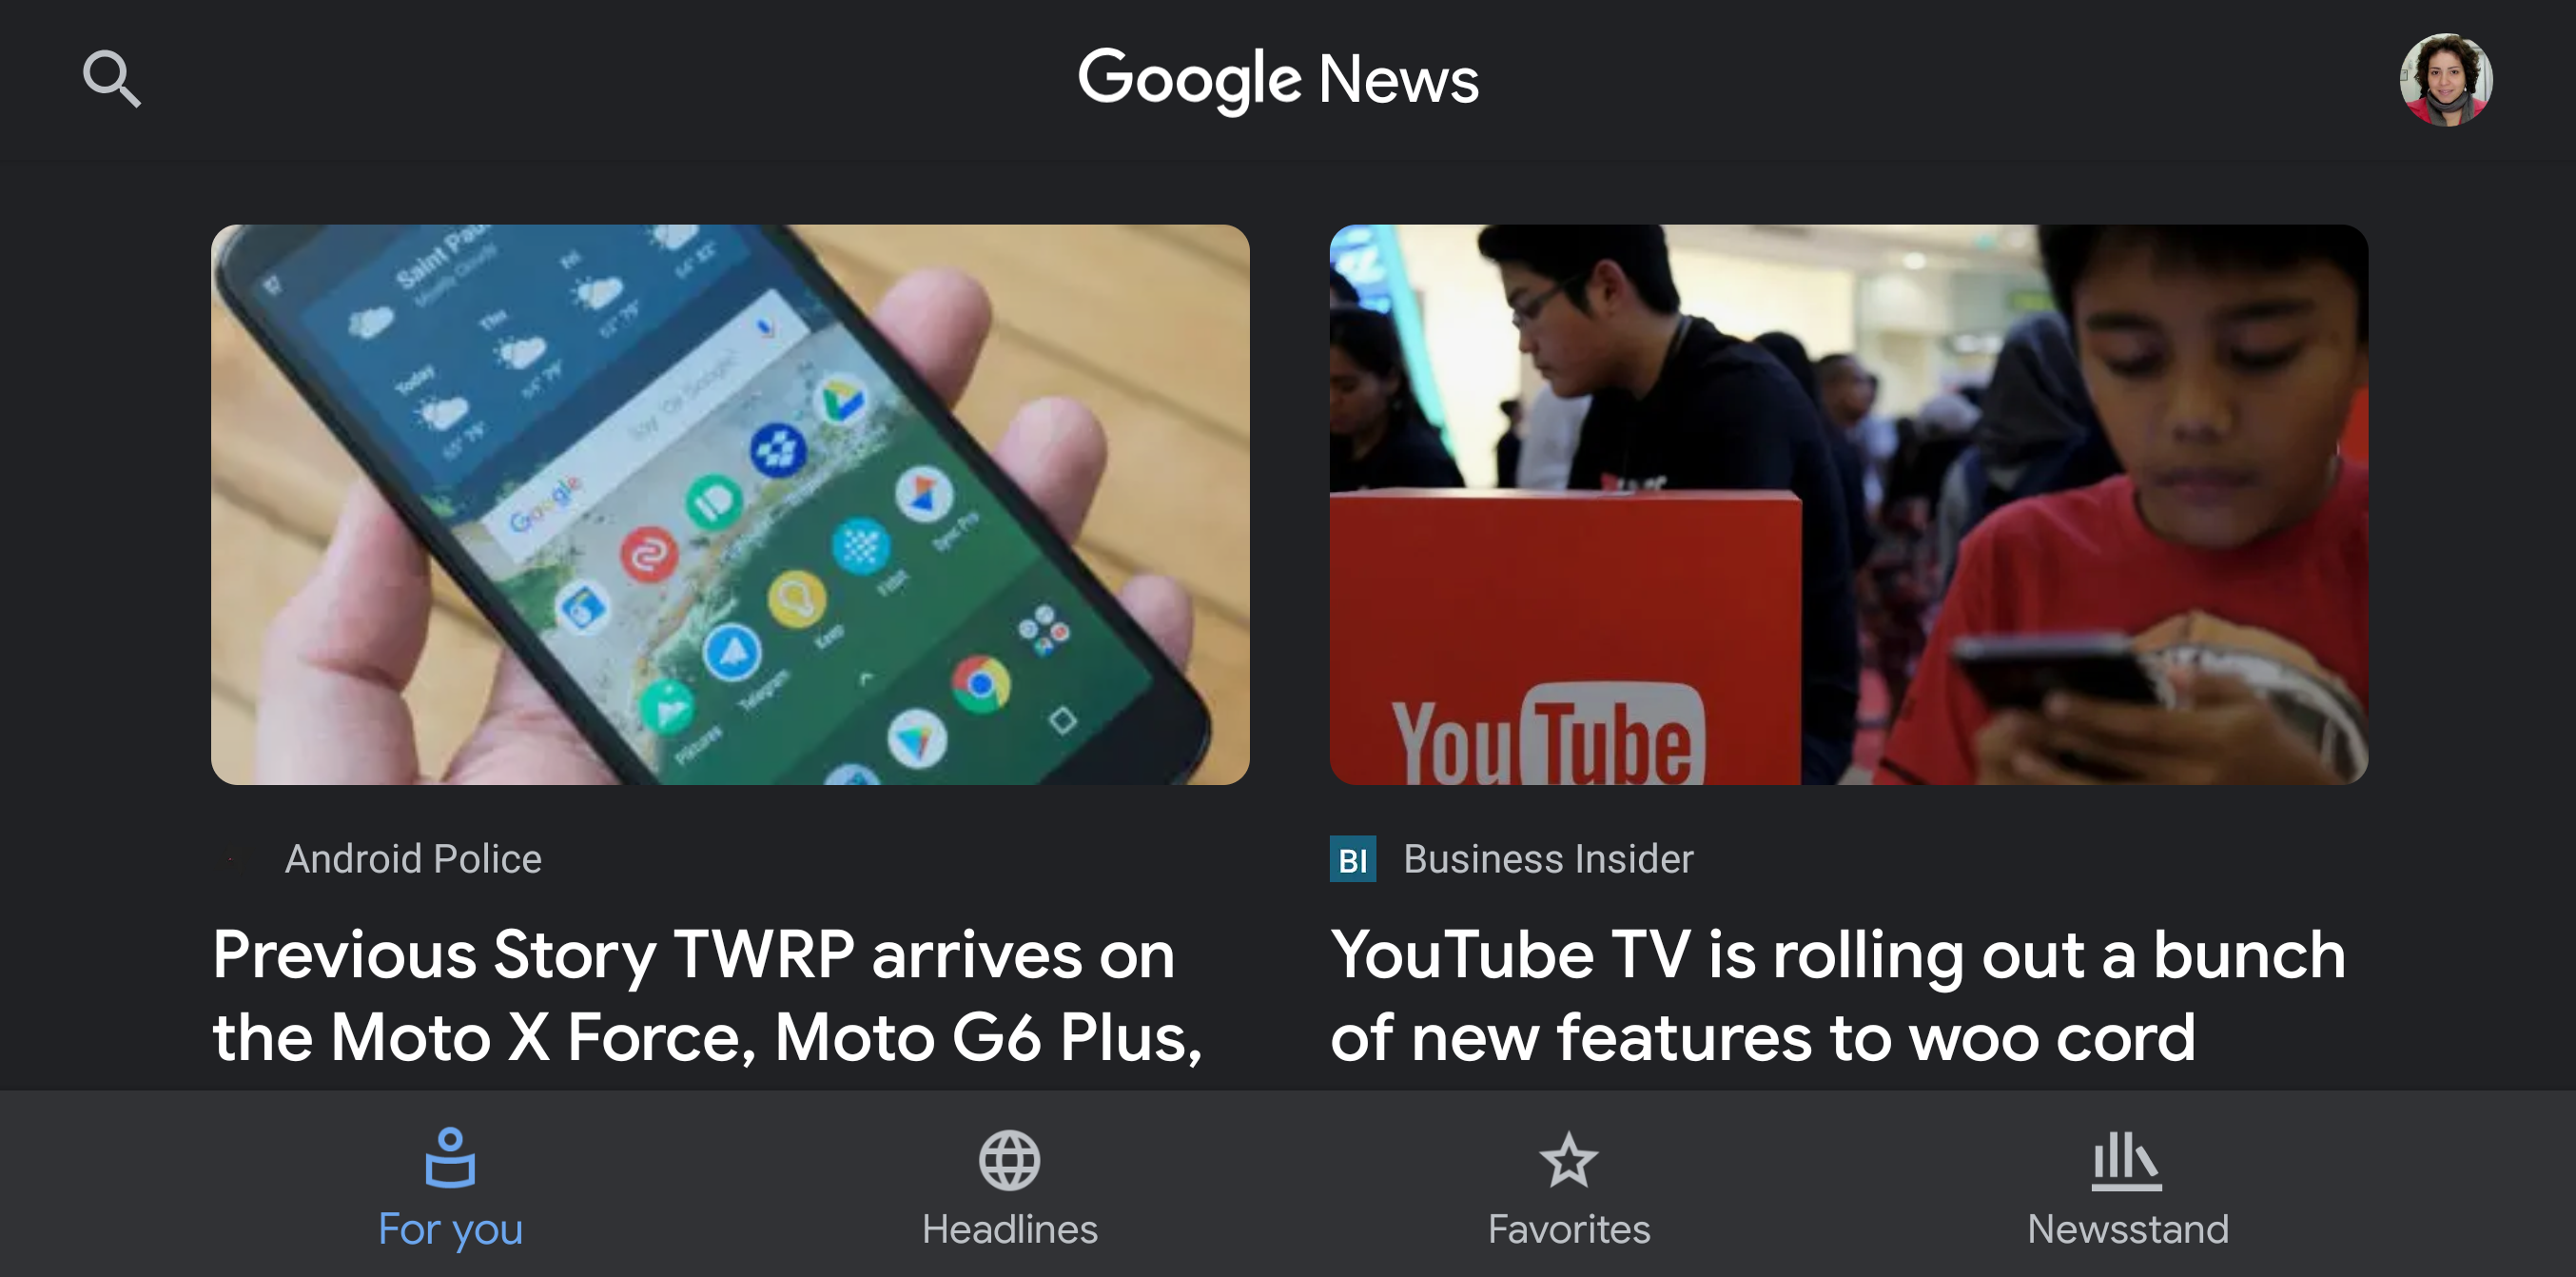 Google News 5 5 brings a dark theme to the entire app [APK